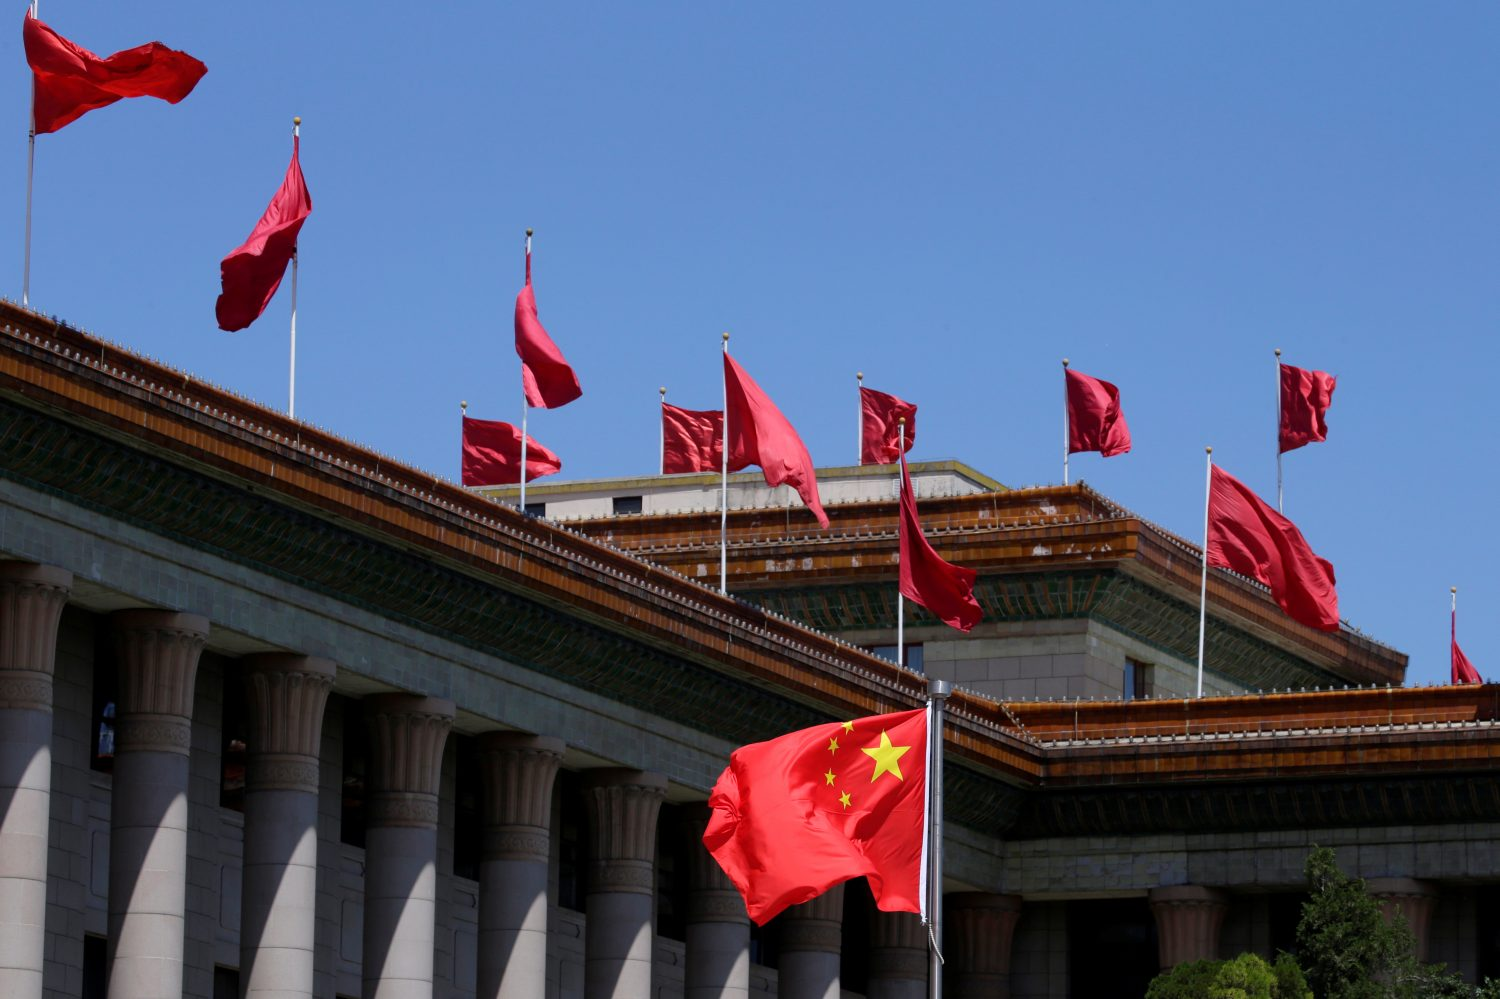 A Chinese flag flutters in front of the Great Hall of the People in Beijing, China, May 27, 2019. REUTERS/Jason Lee